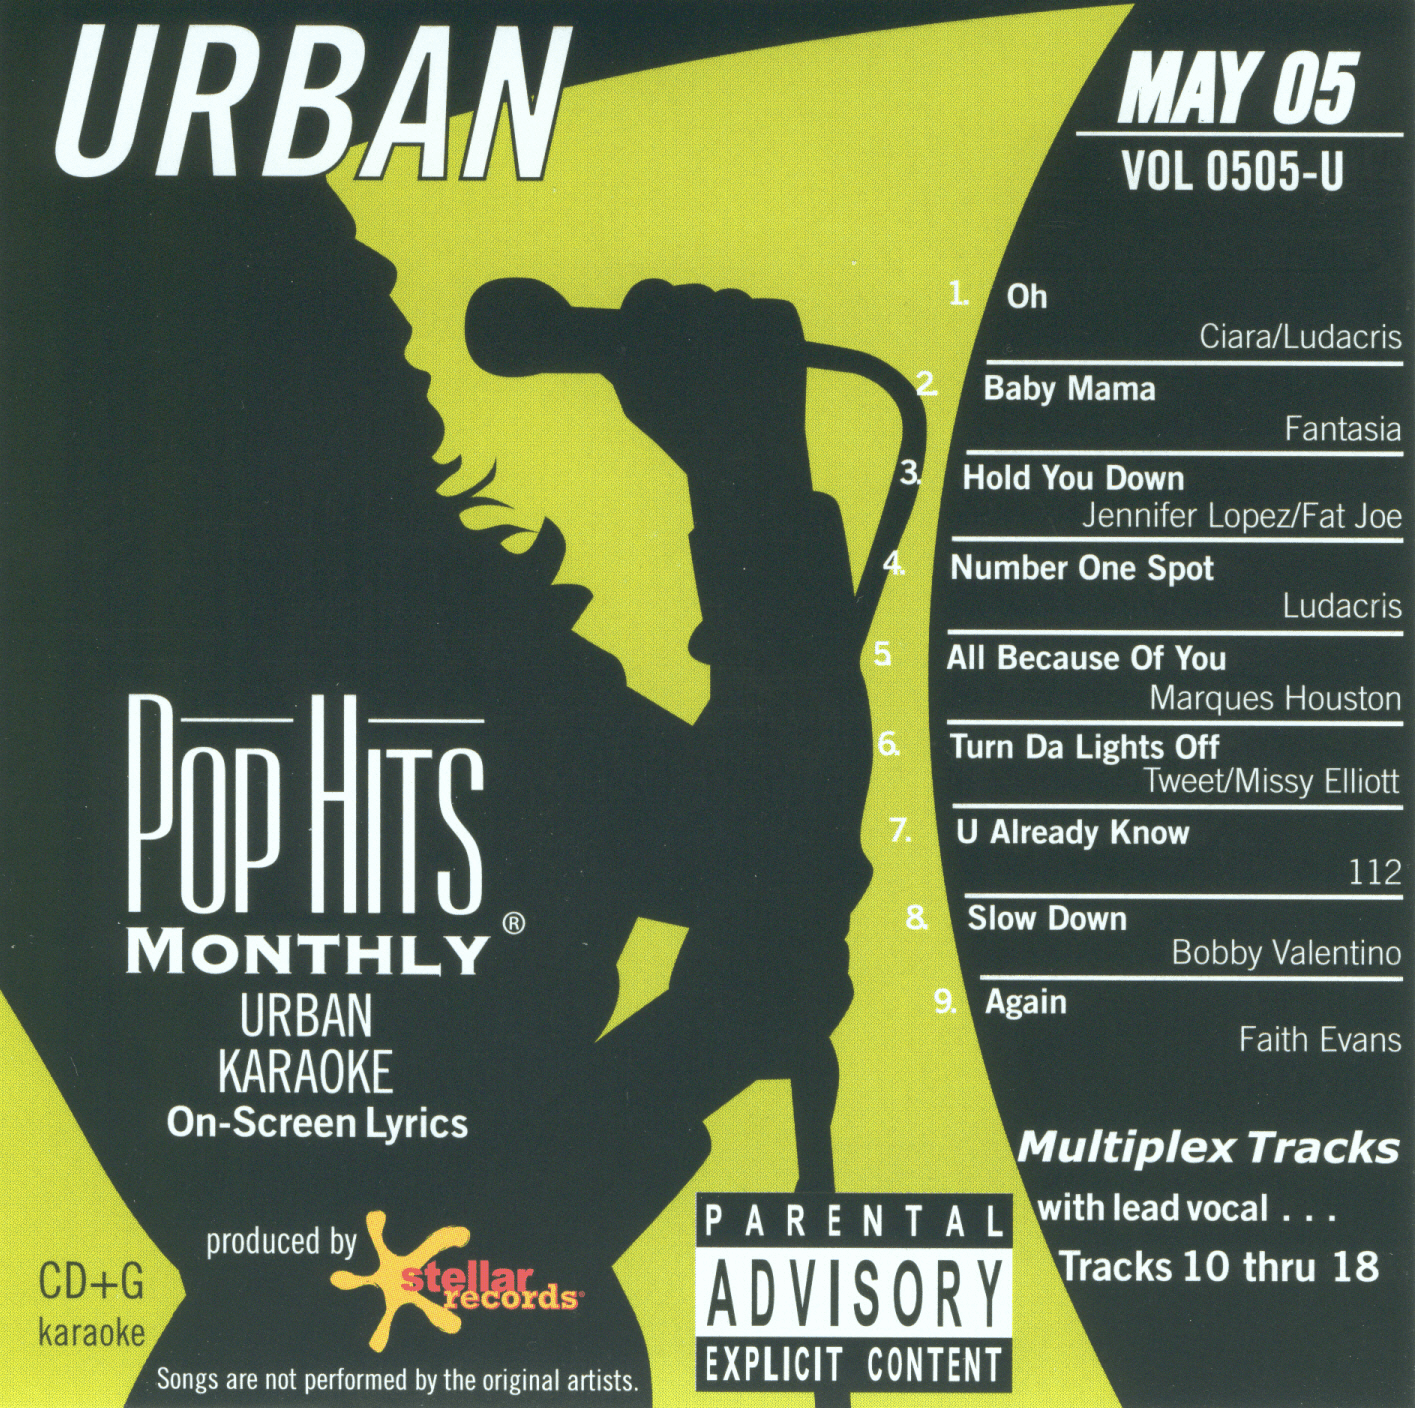 URBAN MAY 2005  Pop Hits Monthly  Vol.0505